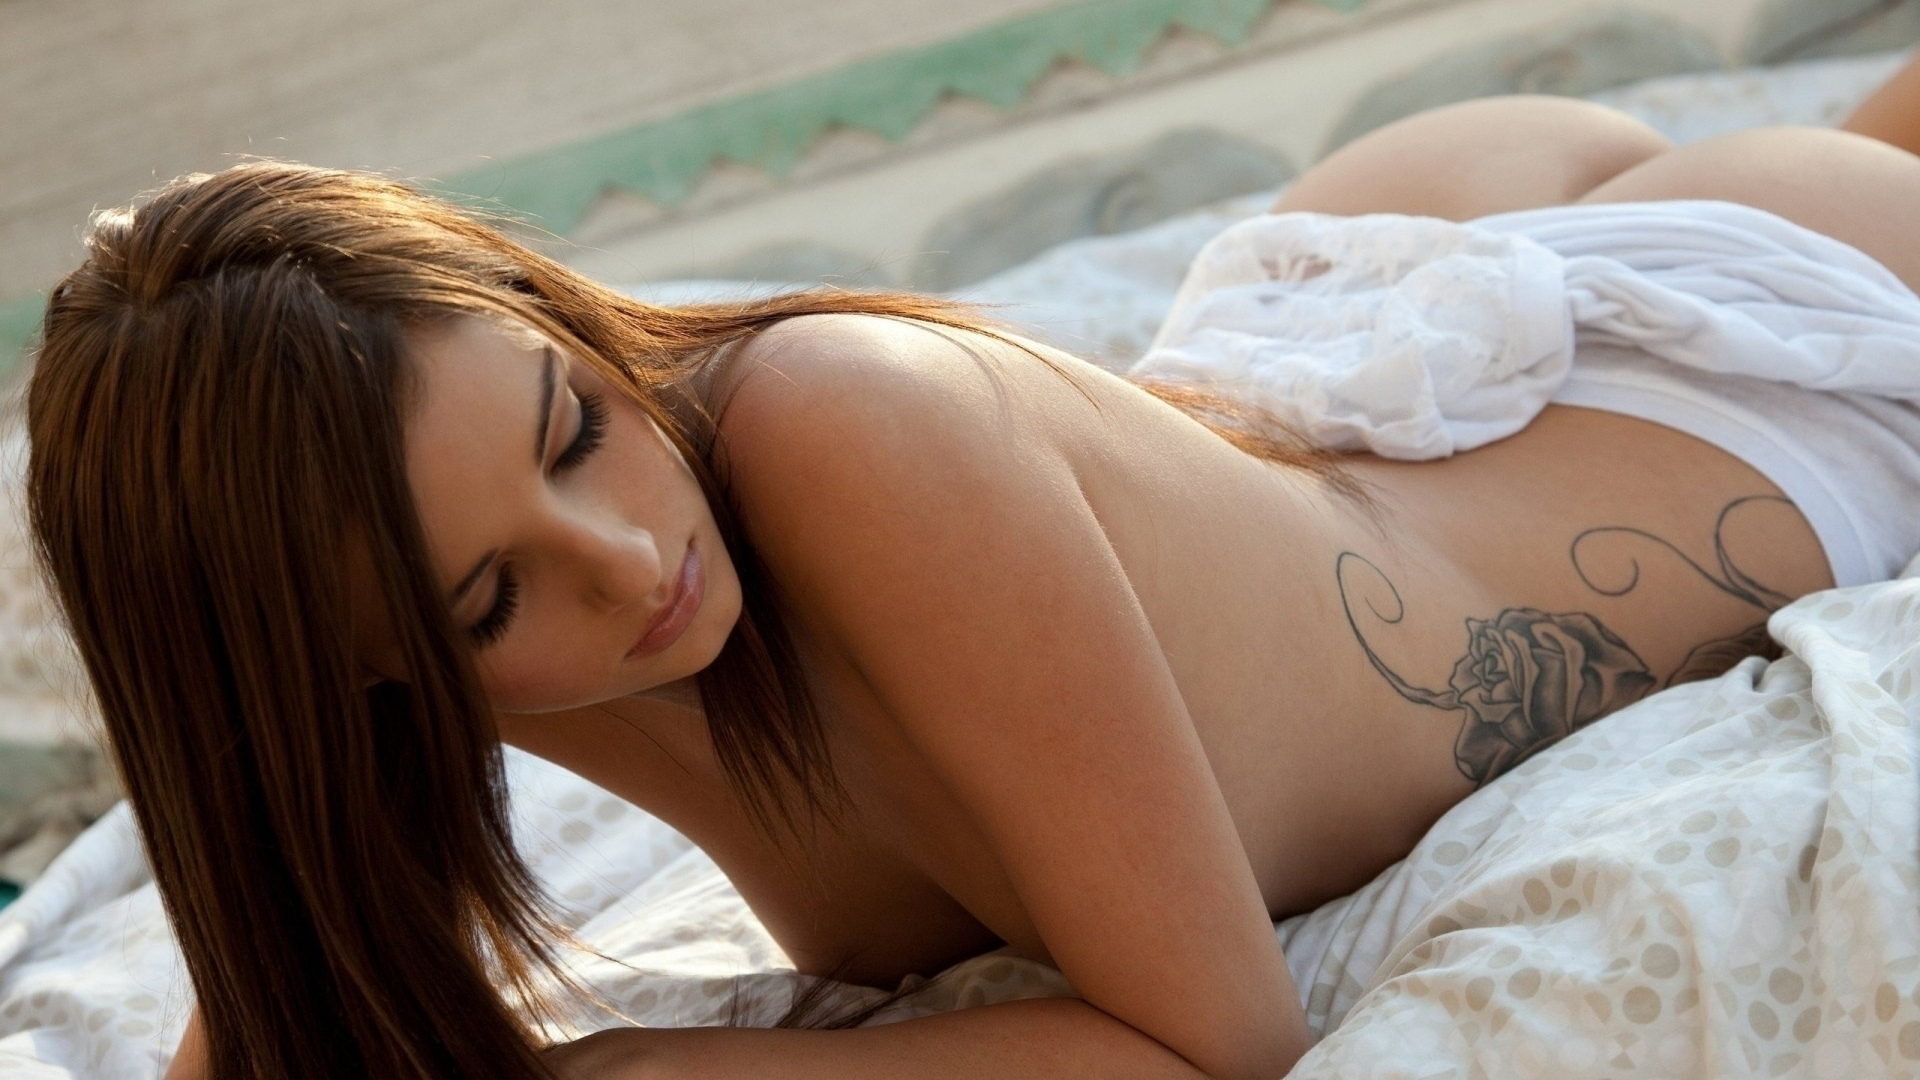 Naughty amateur wives naked